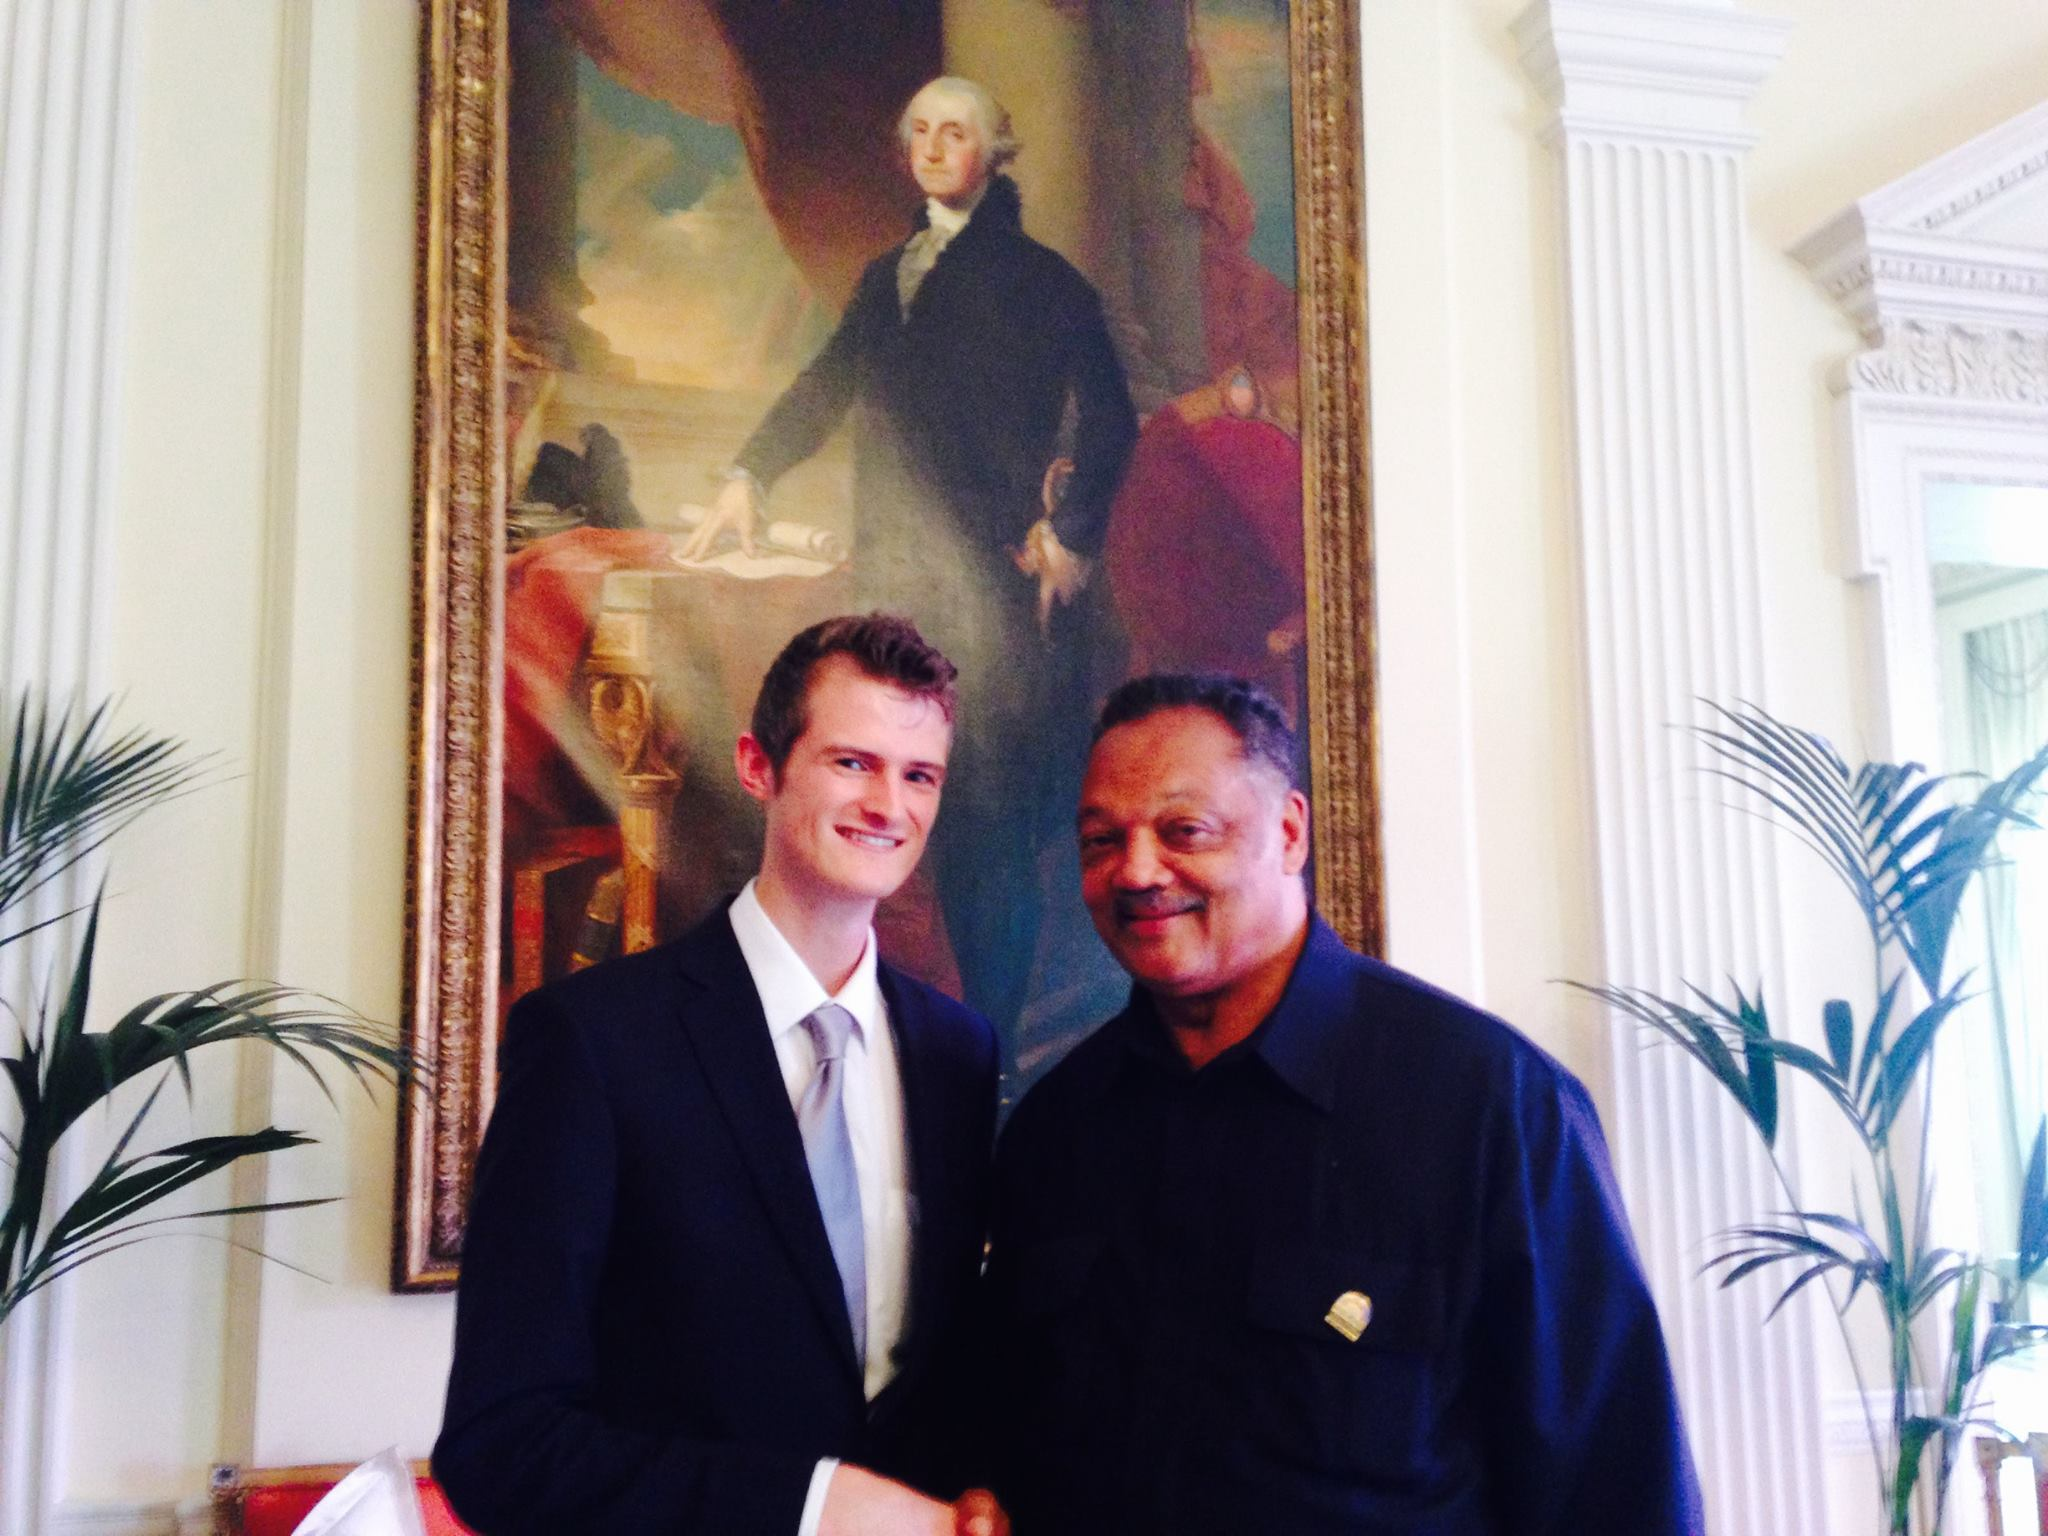 """I met civil rights activist and former Presidential candidate Reverend Jesse Jackson at the US Embassy, London. I asked Rev Jackson what we should do when we see social, racial or gender injustice. He replied: """"Never confuse what is normal with what is right""""."""